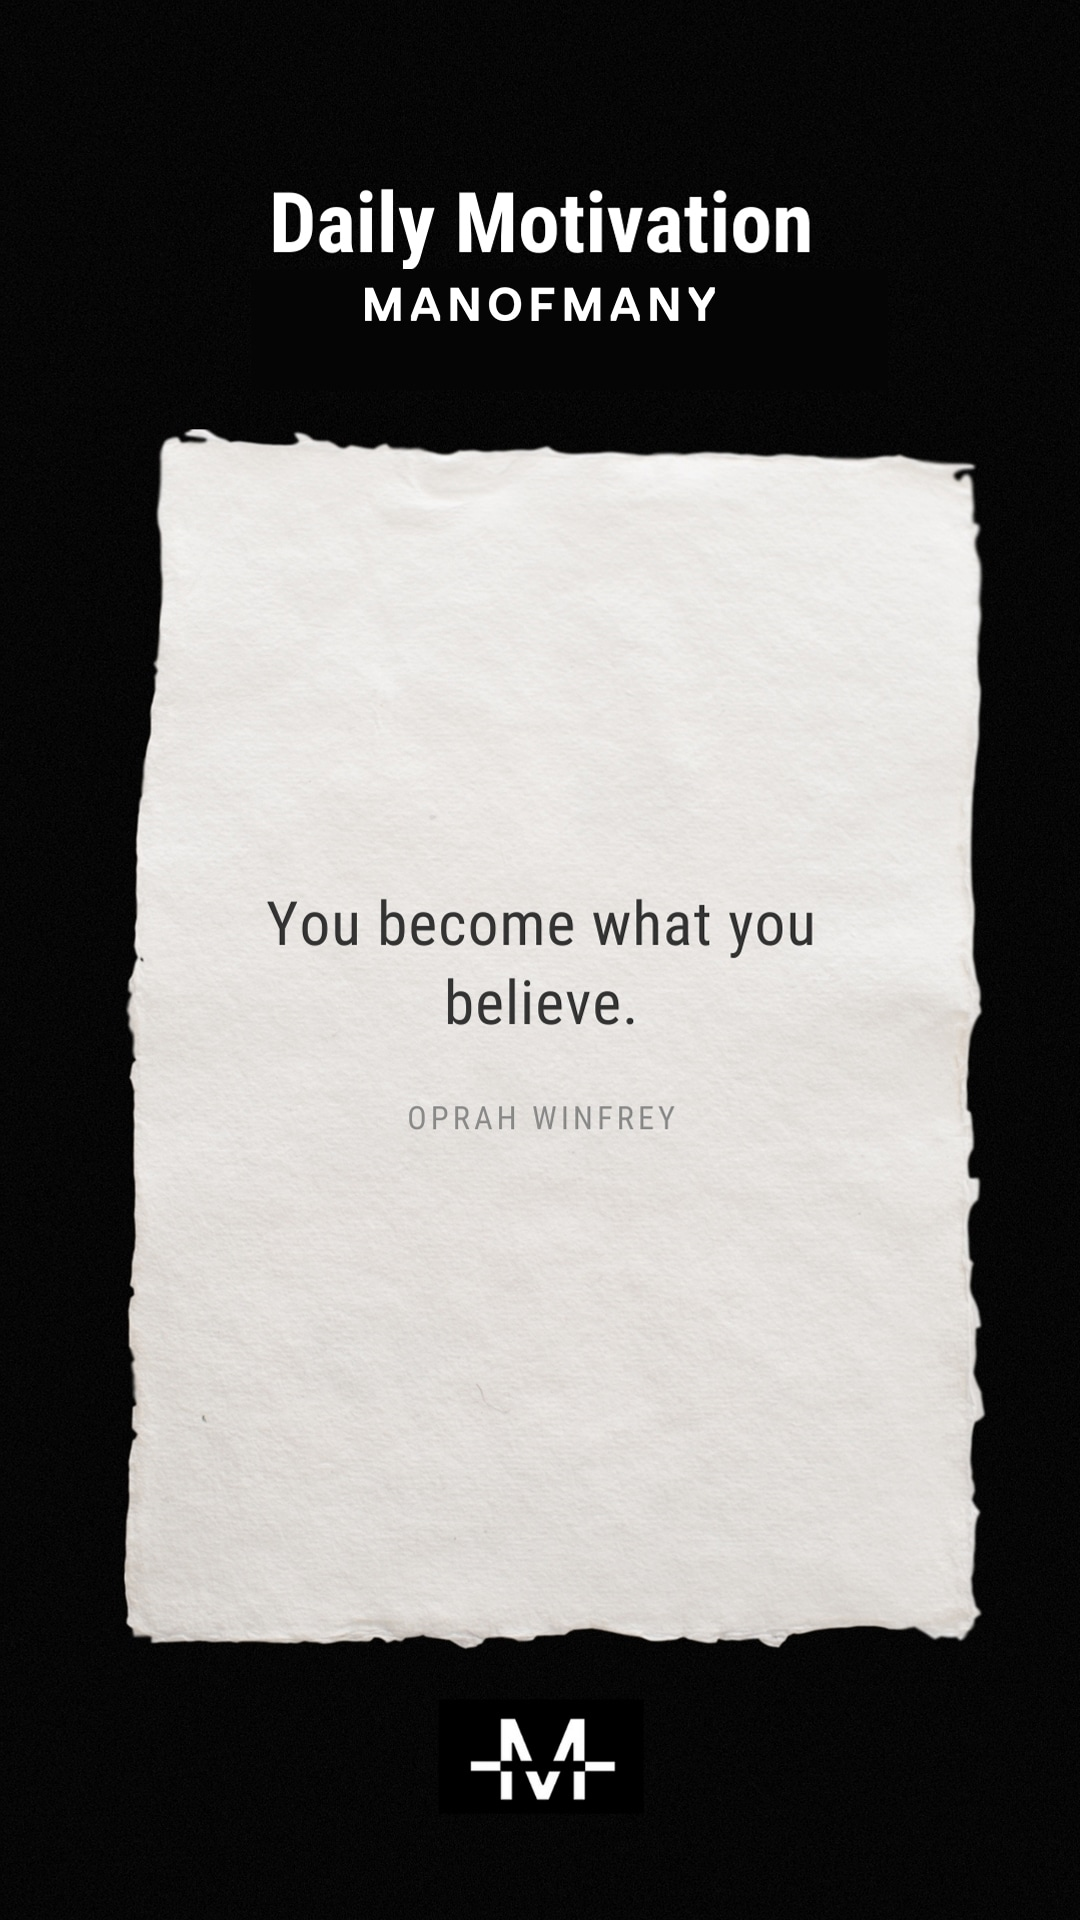 You become what you believe. –Oprah Winfrey quote